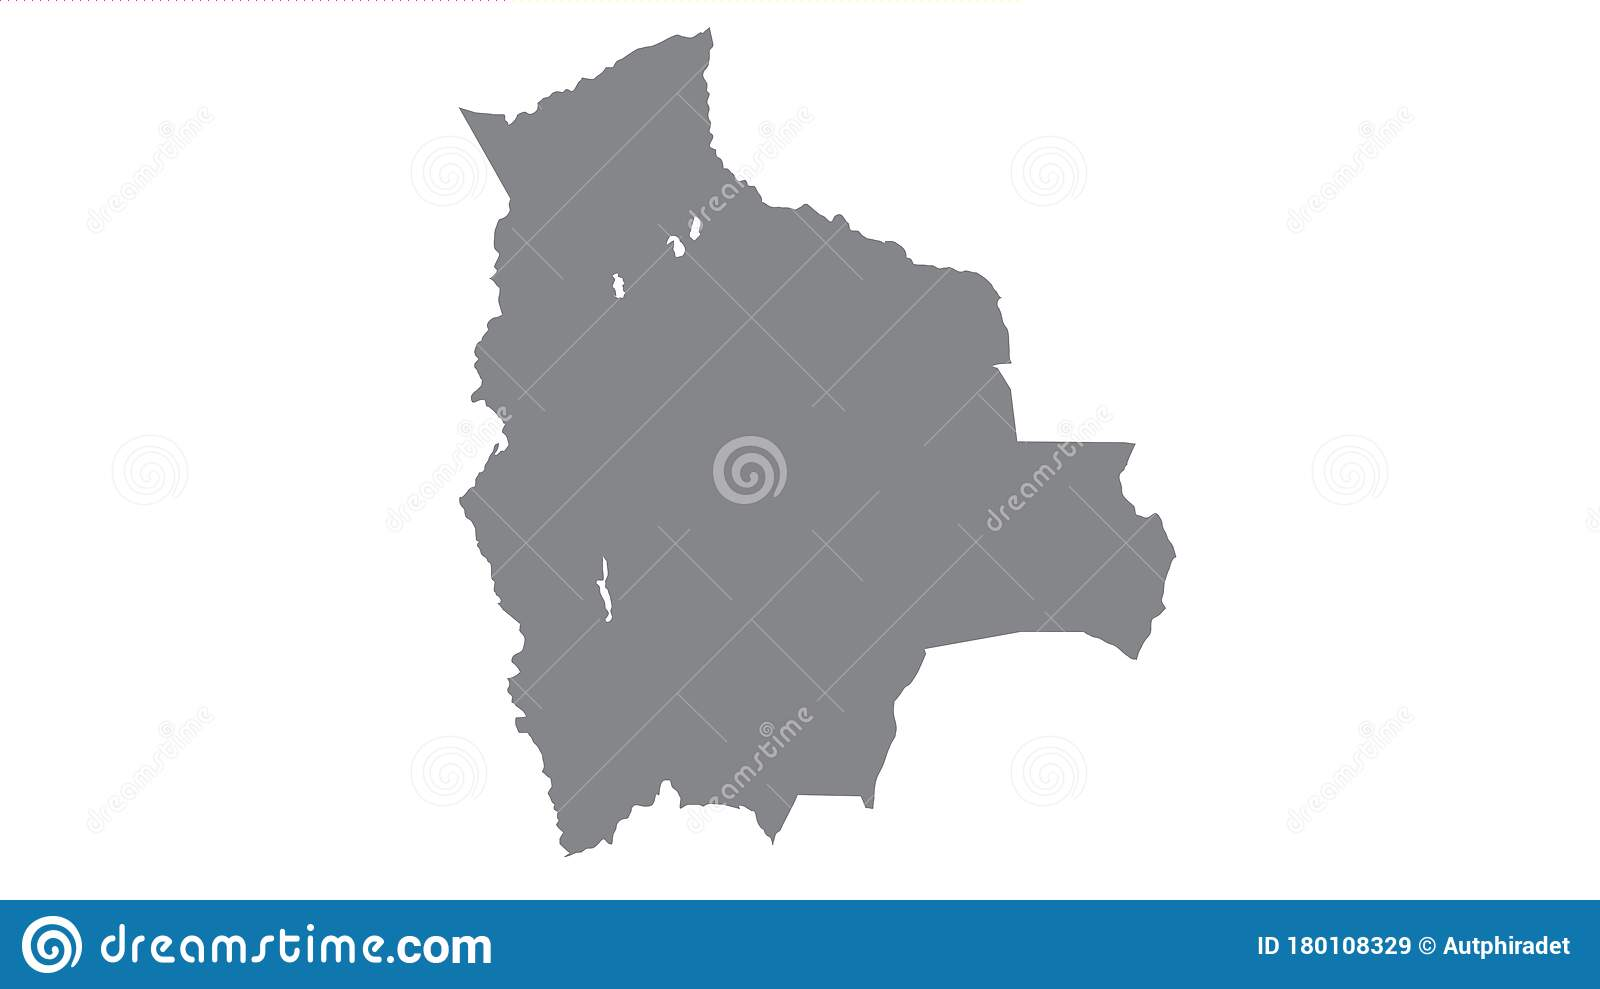 Bolivia map with gray tone on white background, illustration, textured, Symbols of Bolivia, for advertising, promote, TV.